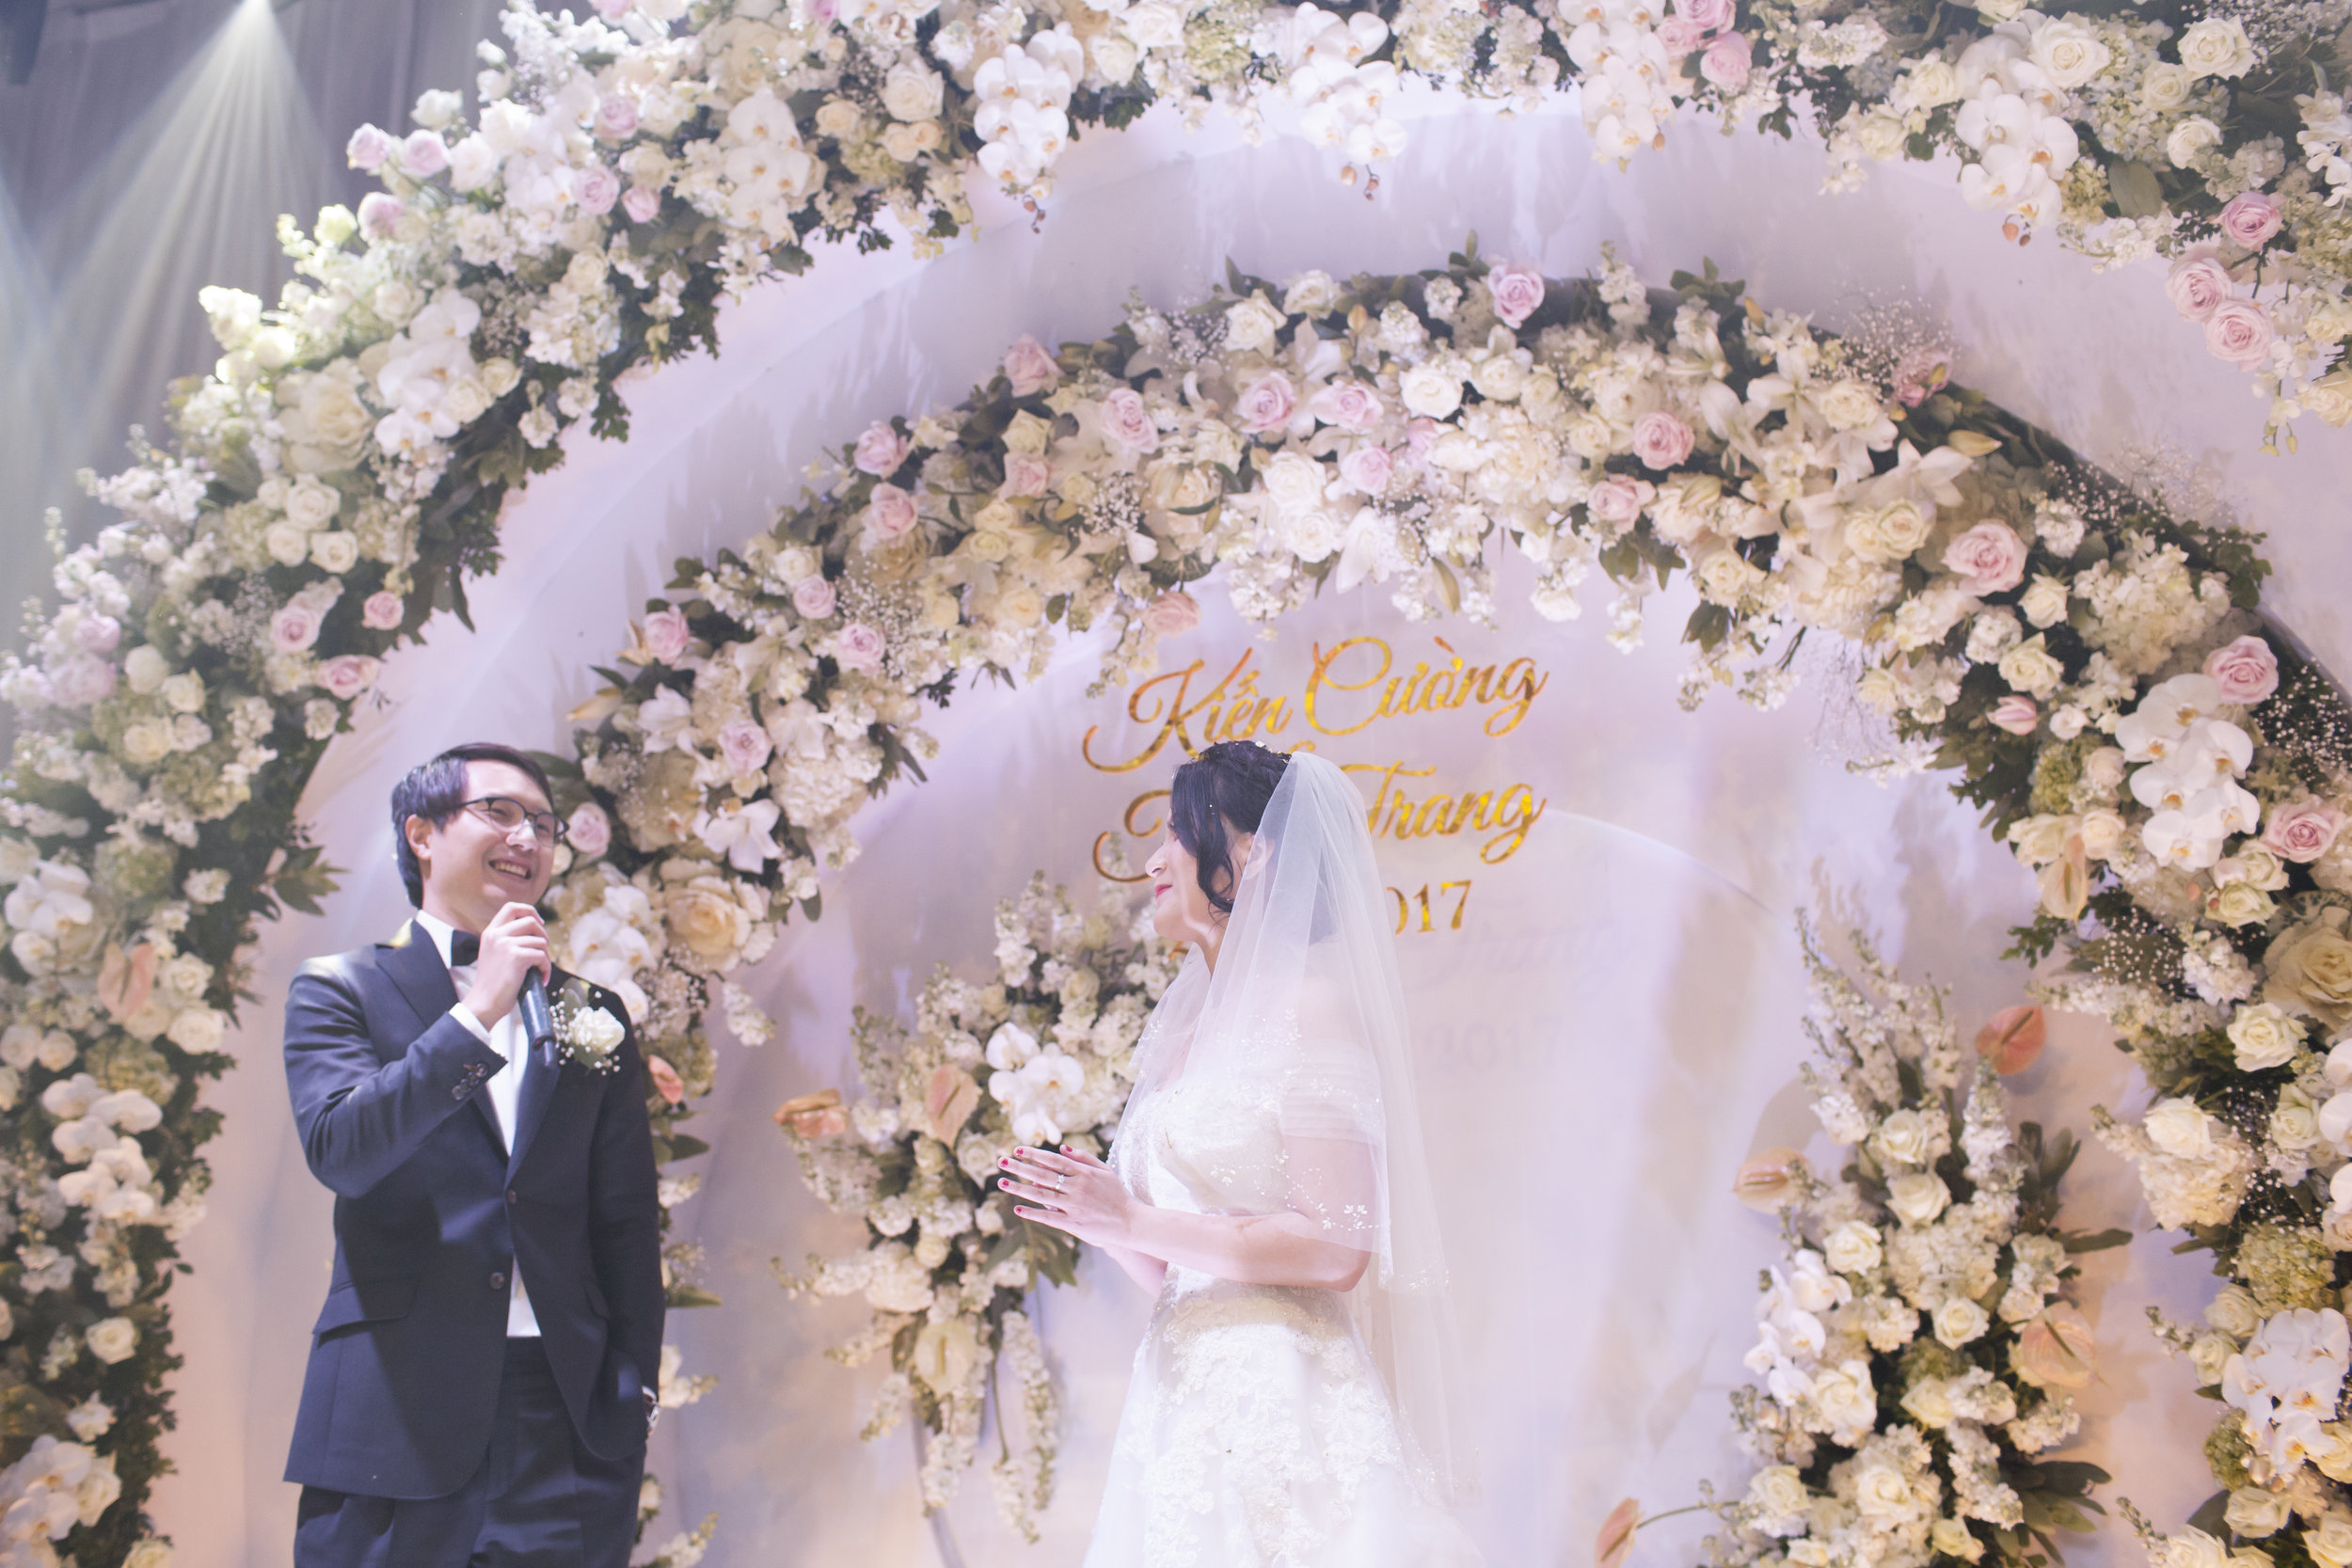 """TRANG & CUONG - """"Dear Giang & The F Lab teamThank you so much for your help & support in preparing & perfecting our wedding ceremony, given tight schedule, different time zones & all sort of difficulties coming from all parties..."""